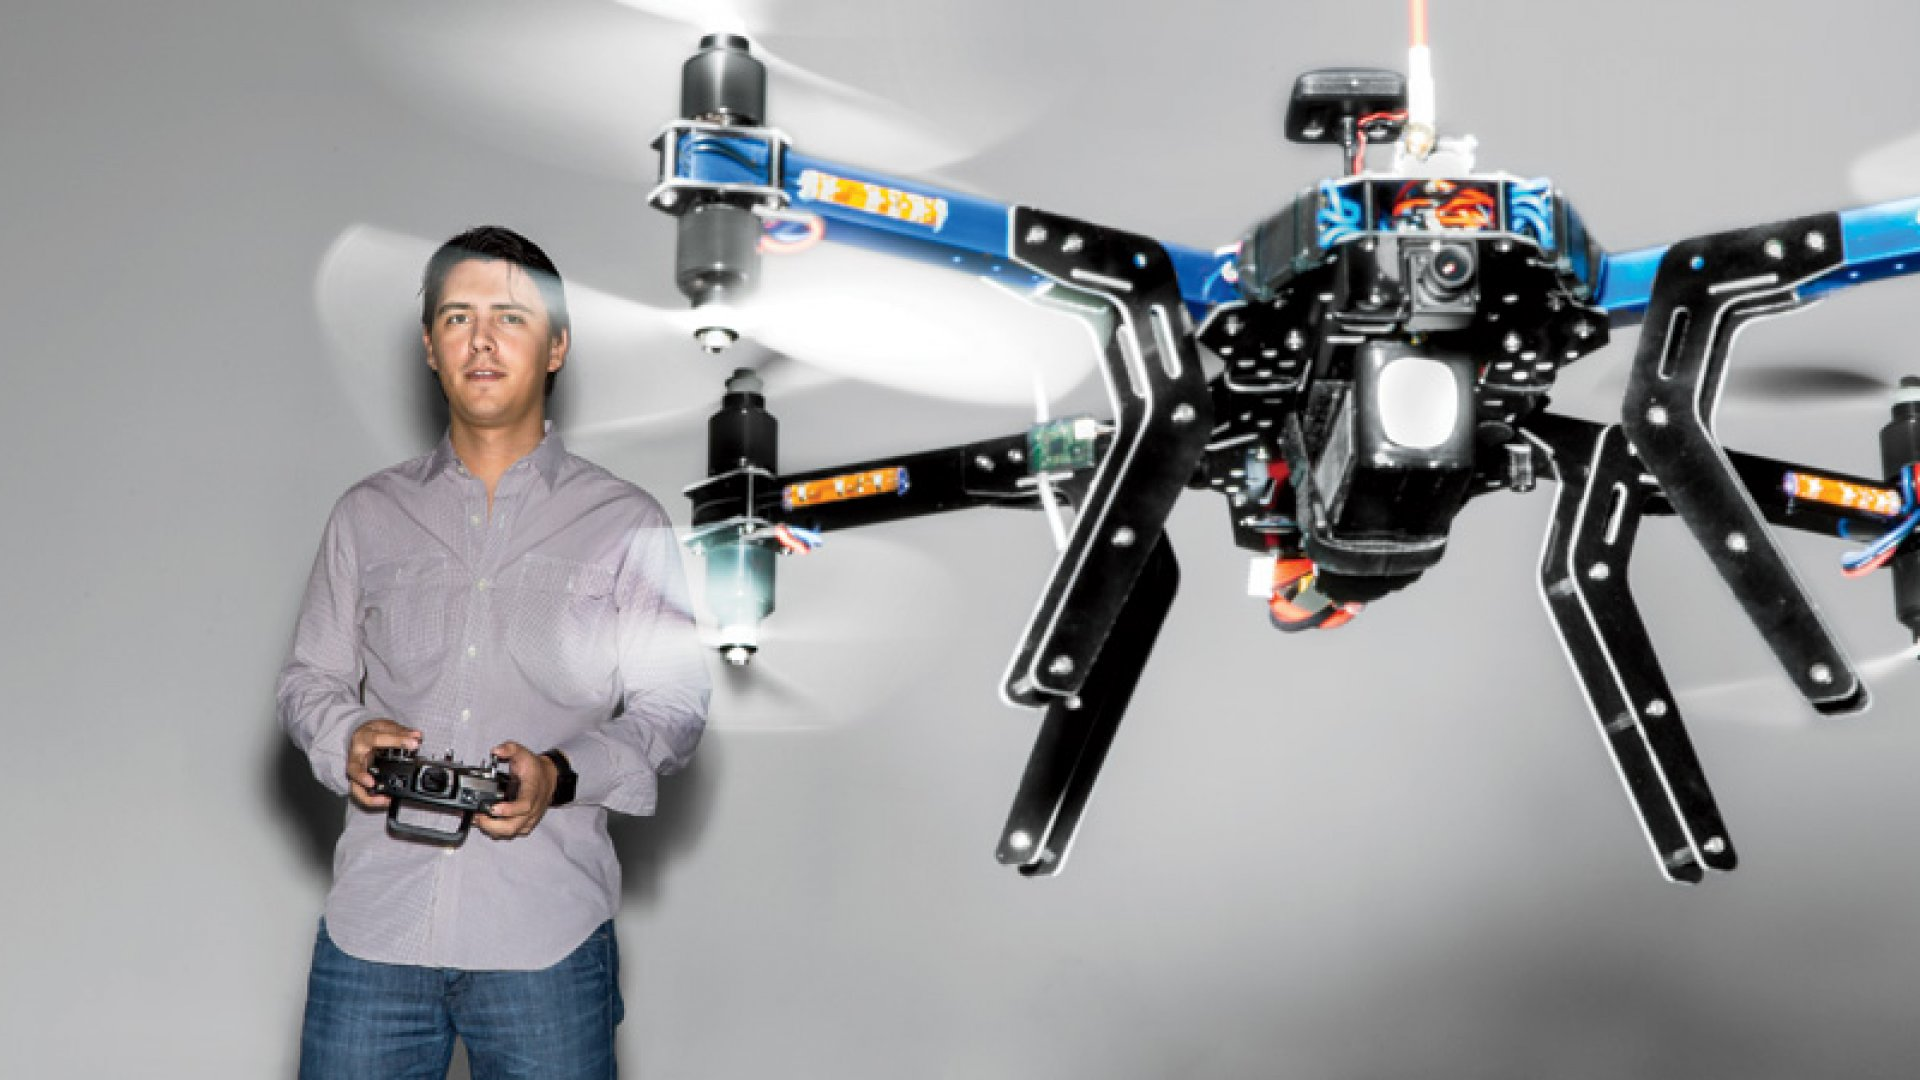 Jordi Muñoz launched 3D Robotics with former <em>Wired</em> editor in chief Chris Anderson via email, didn't finish college, wrote the first autopilot drone program, and built a factory in Mexico--all before he could legally drink a beer.  <br> <br>